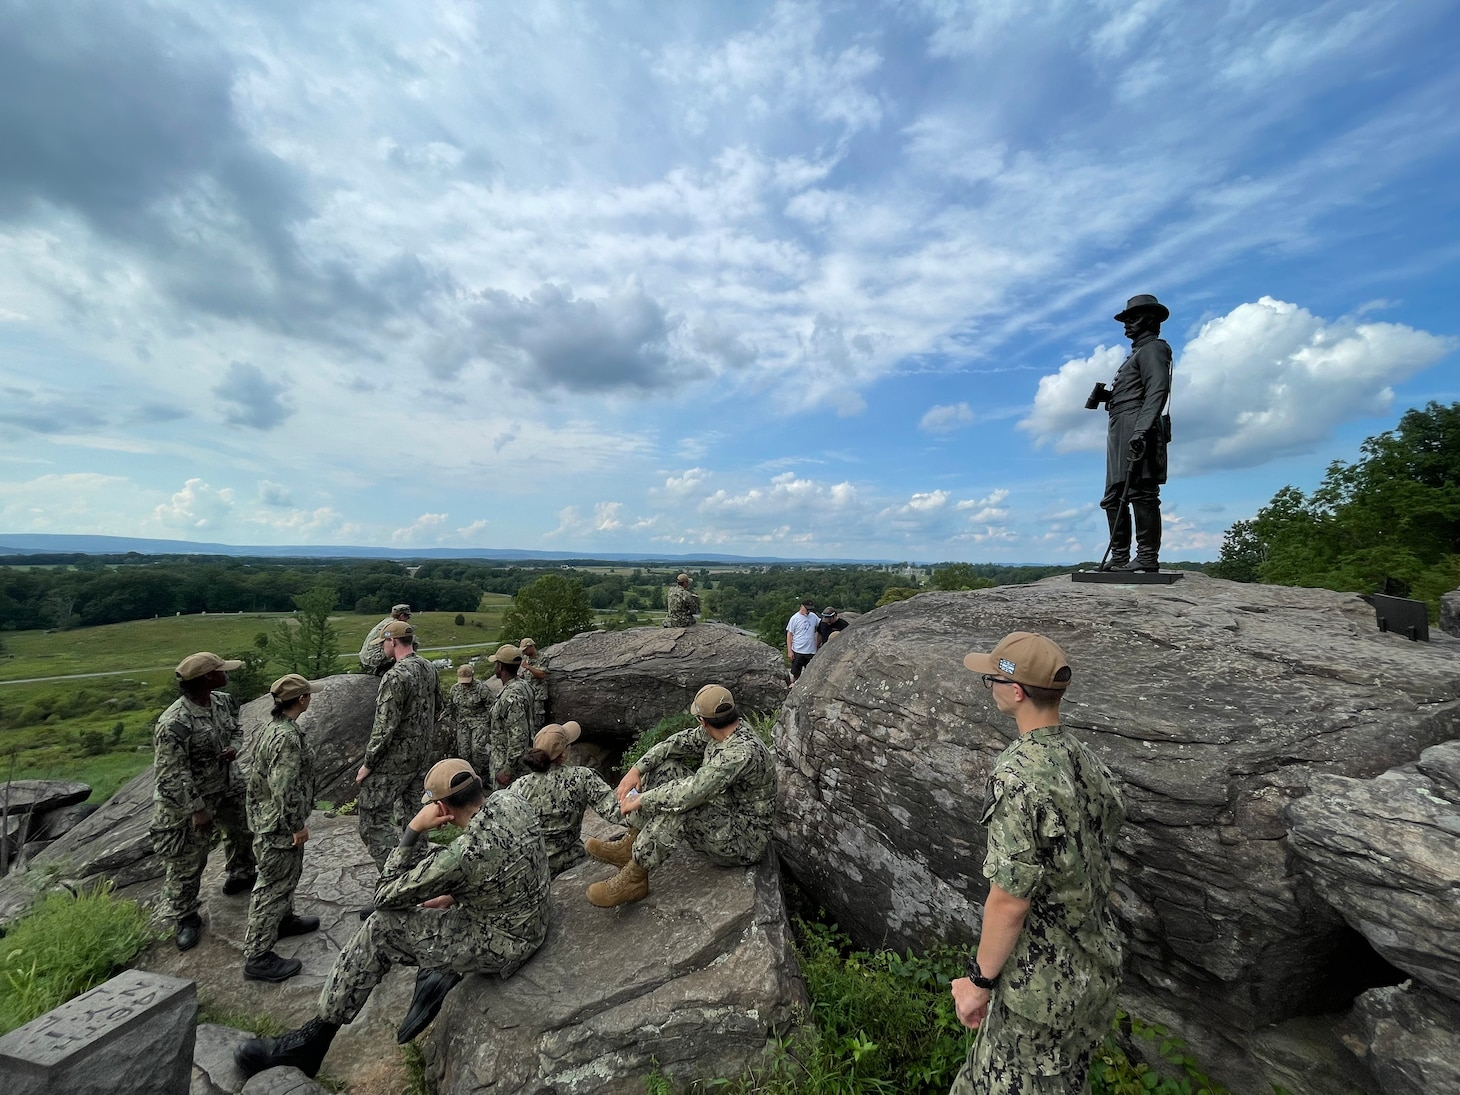 Sailors assigned to the guided-missile cruiser USS Gettysburg (CG 64) gather at Little Round Top, a historic landmark from the Battle of Gettysburg, prior to a day of preservation projects in Gettysburg National Park. Gettysburg Sailors traveled to Gettysburg, Pa. for a three-day namesake visit, where they performed several community relations projects and connected with the Gettysburg community. (U.S. Navy courtesy photo)